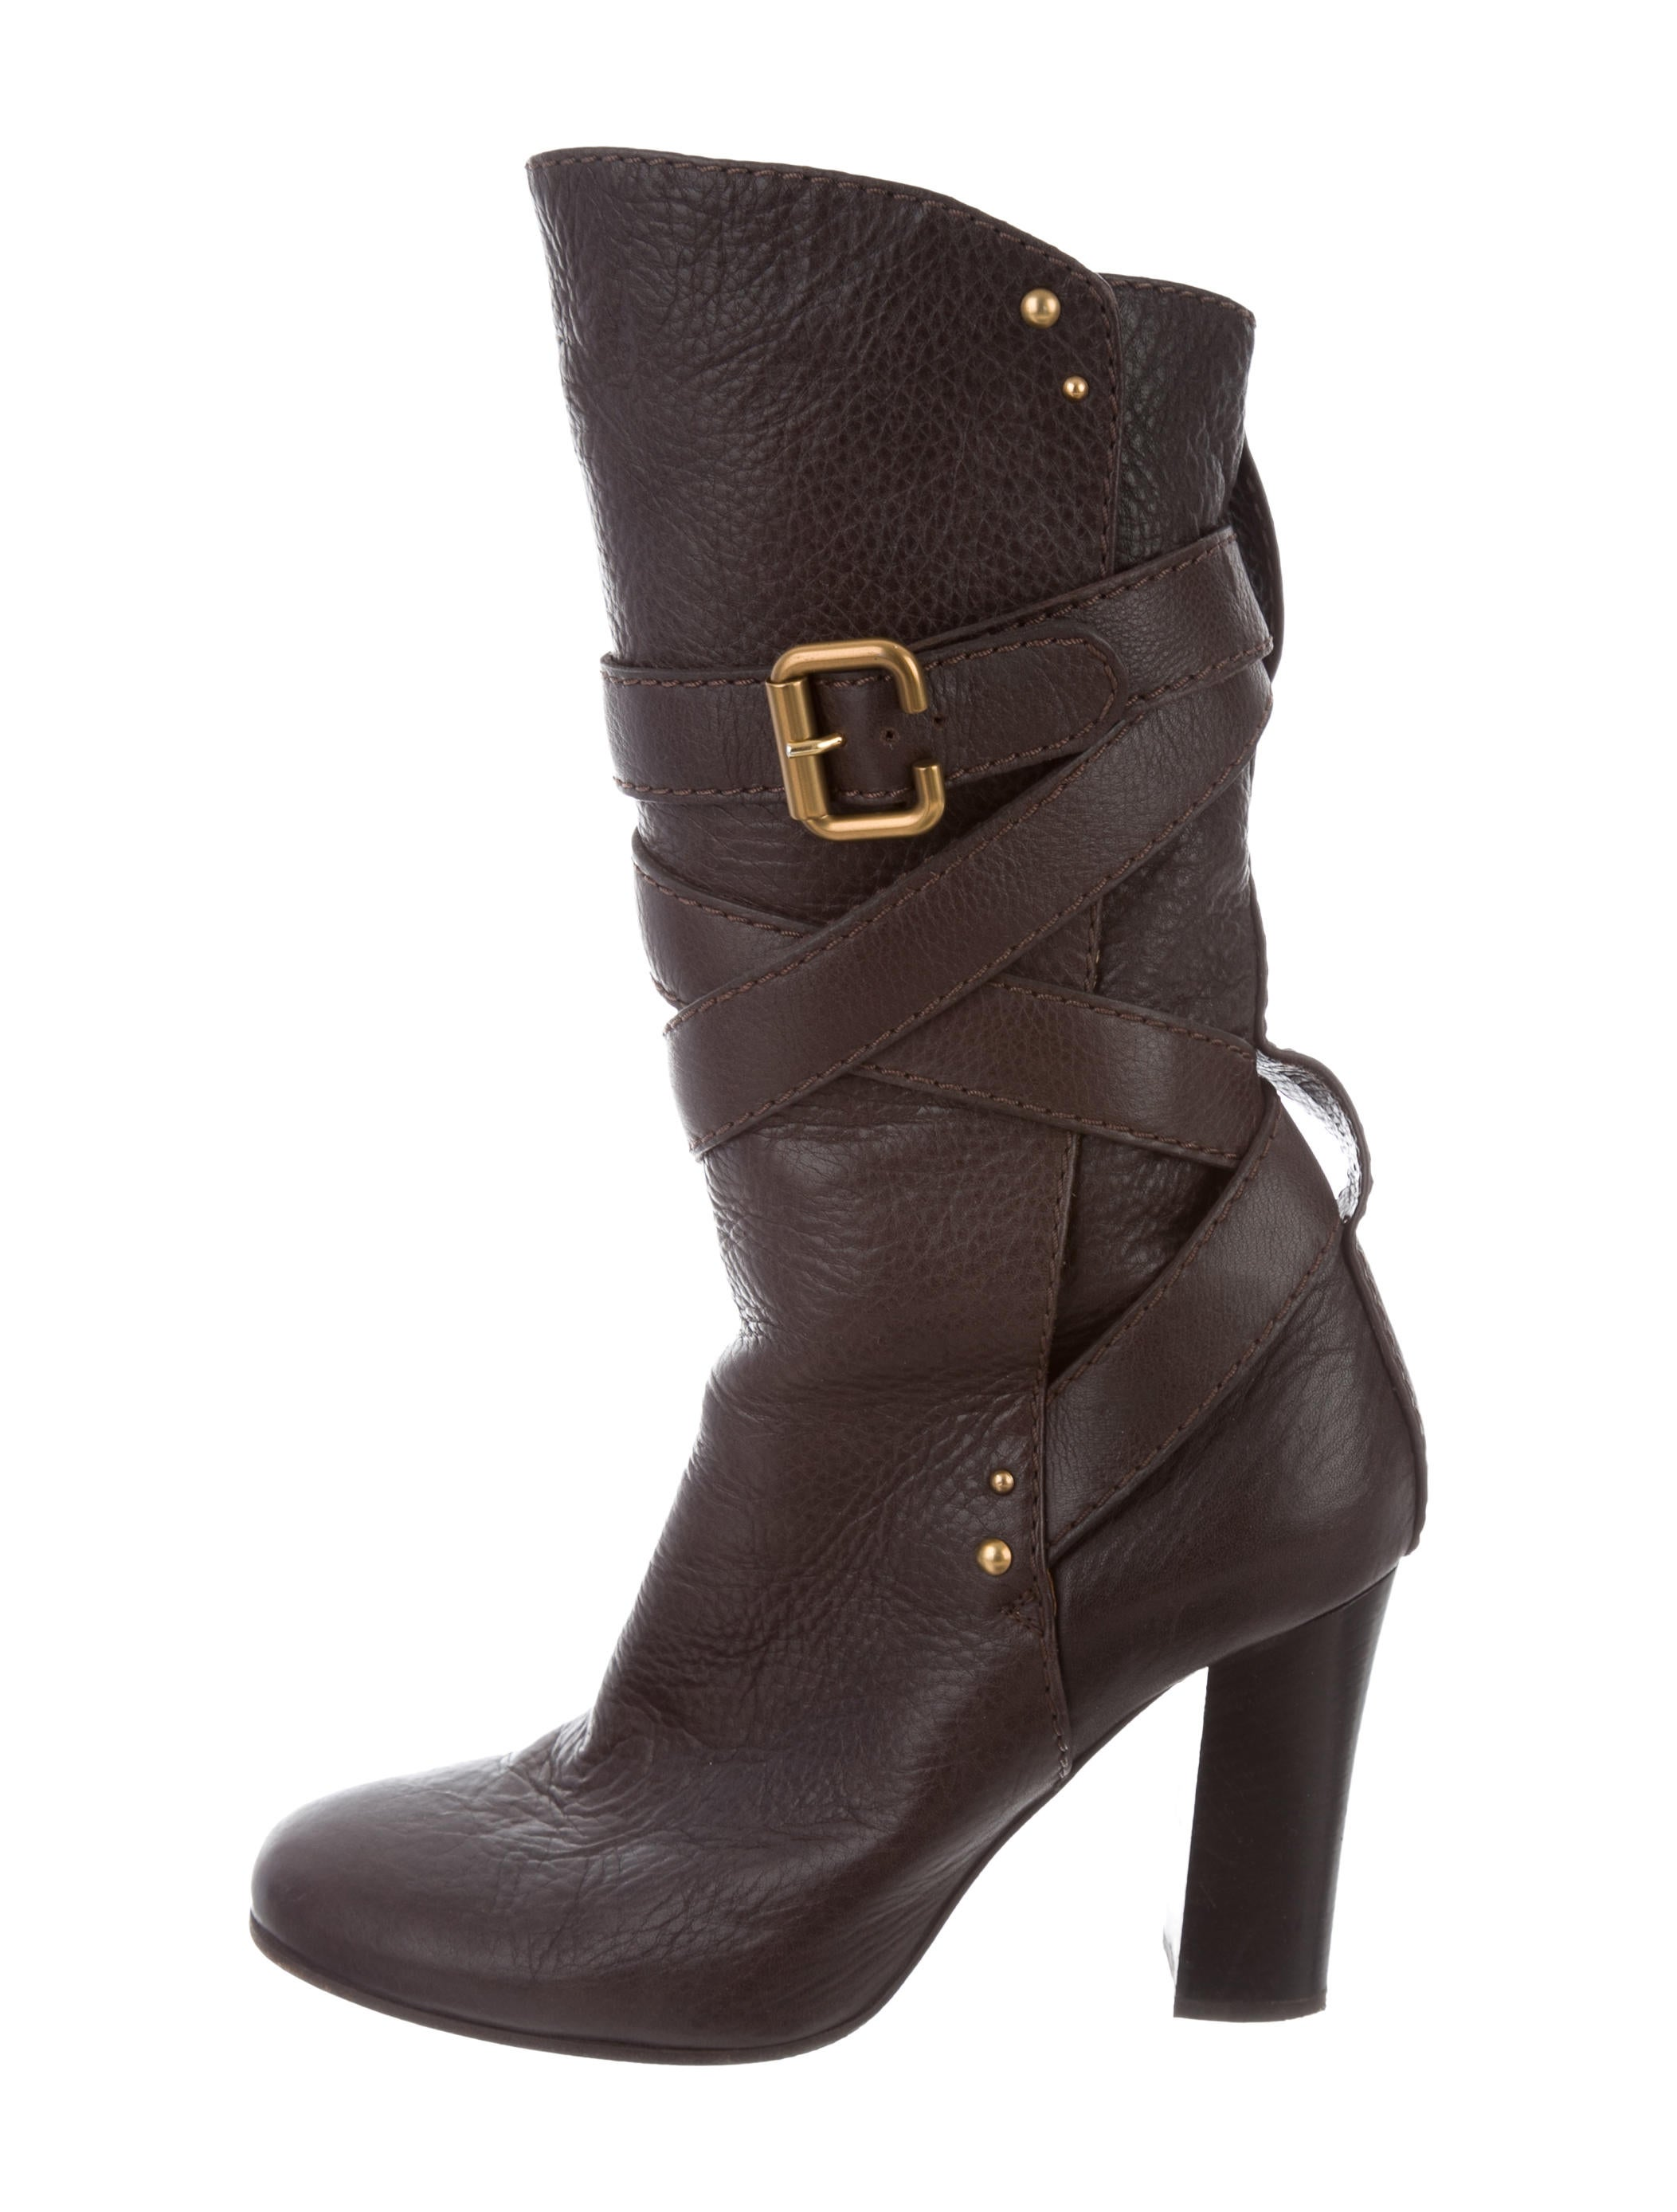 chlo 233 leather mid calf boots shoes chl59773 the realreal